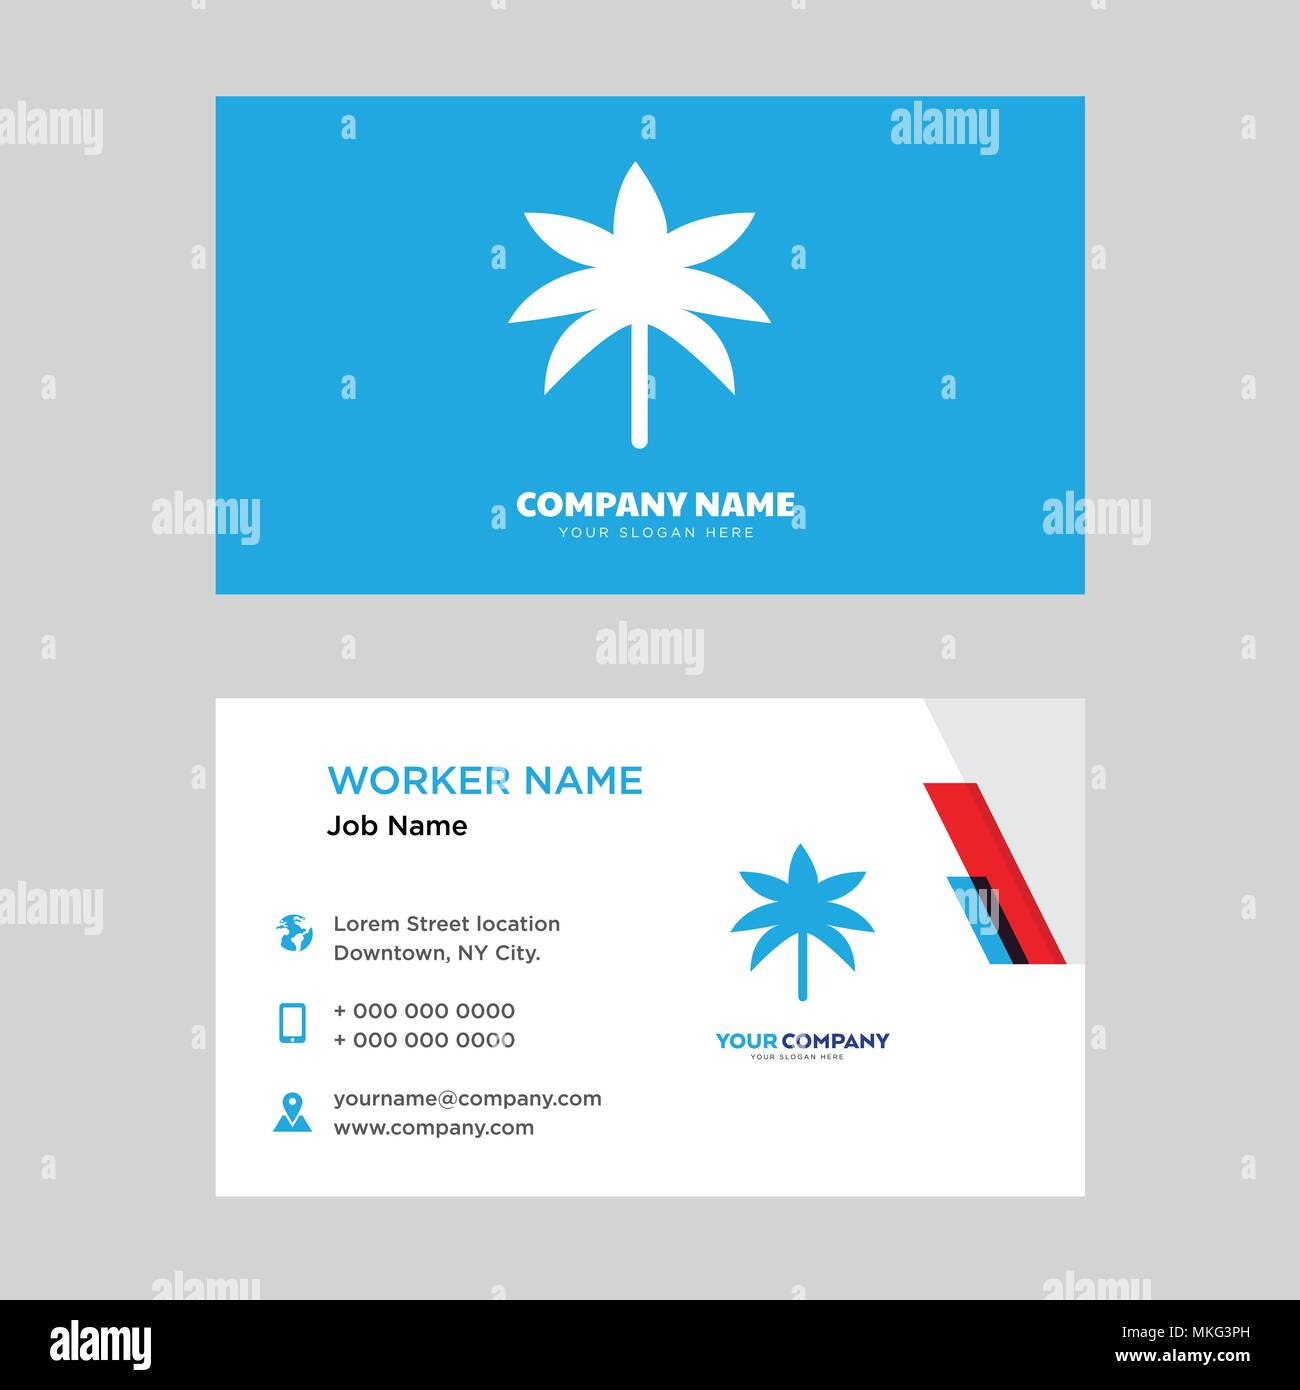 Two palm trees business card design template visiting for your two palm trees business card design template visiting for your company modern horizontal identity card vector colourmoves